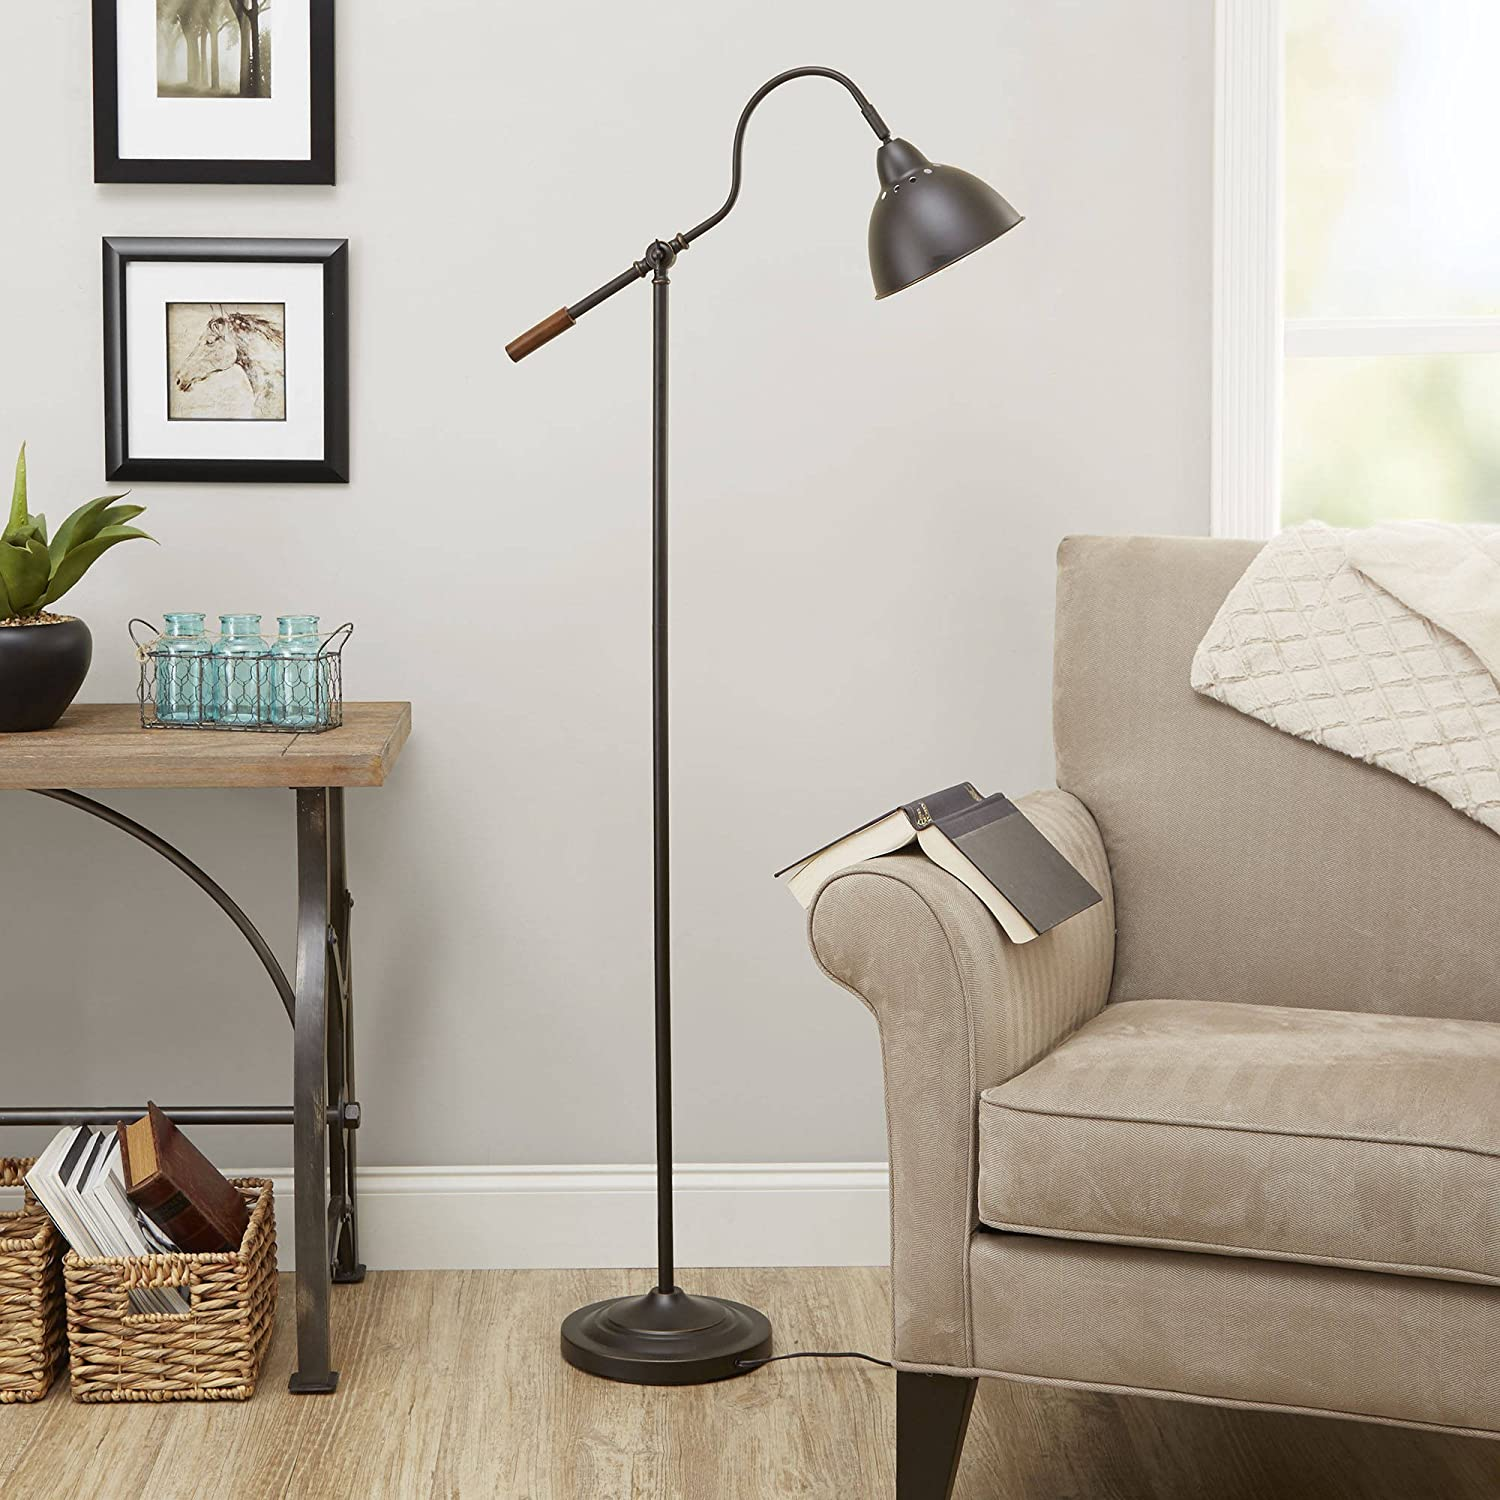 60 Inch Classis Style Dome Shade Task Floor Lamp with Adjustable Arm Bronze Finish For Cozy Reading Corner